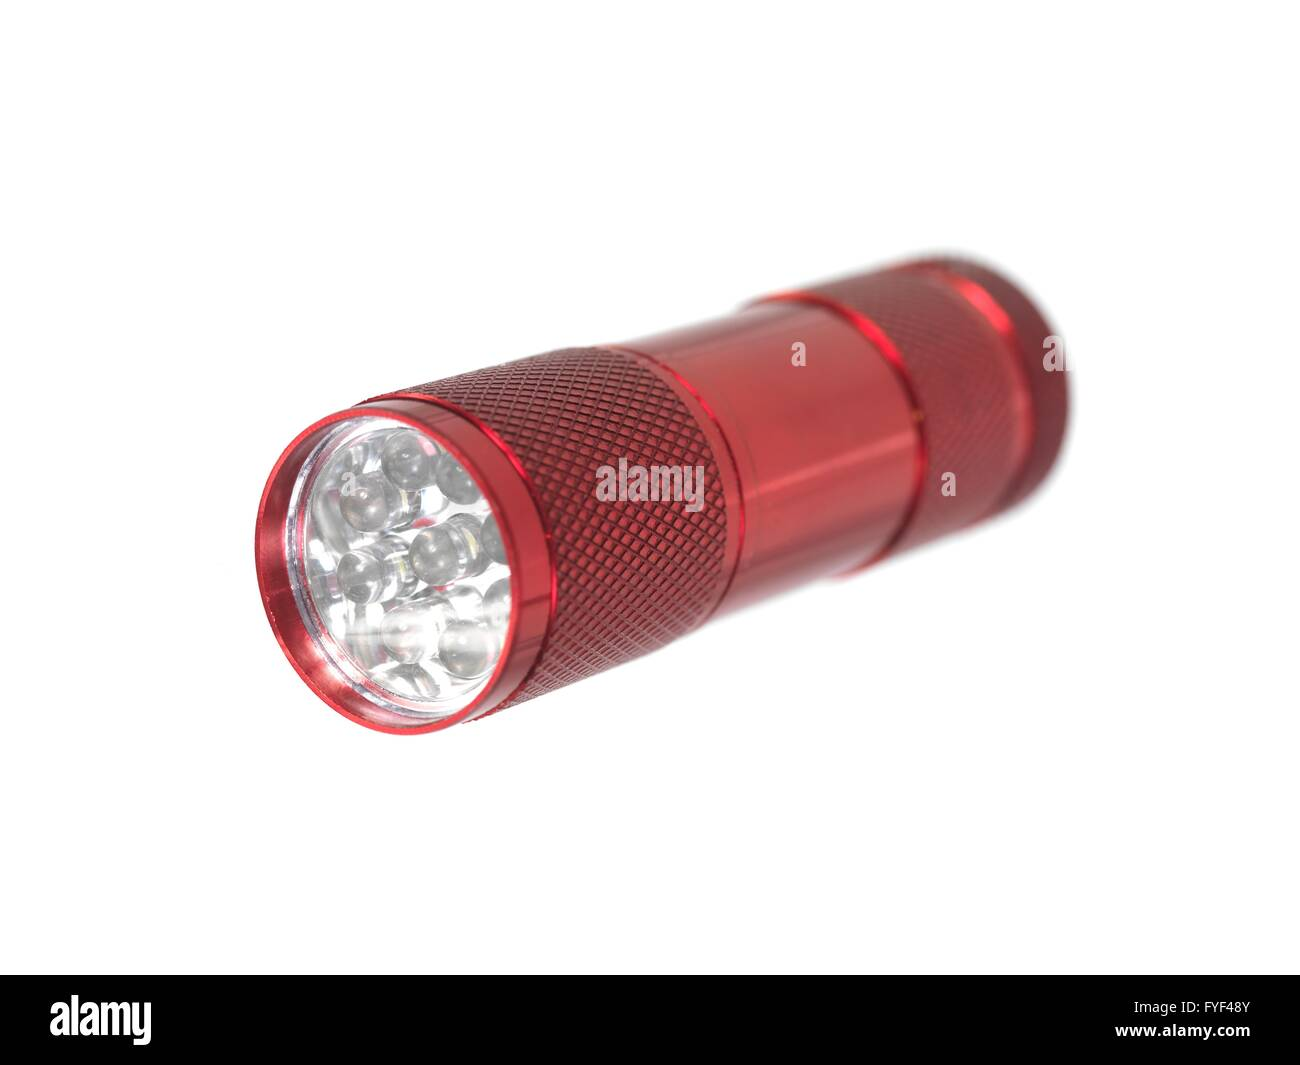 A flash light isolated against a white background - Stock Image